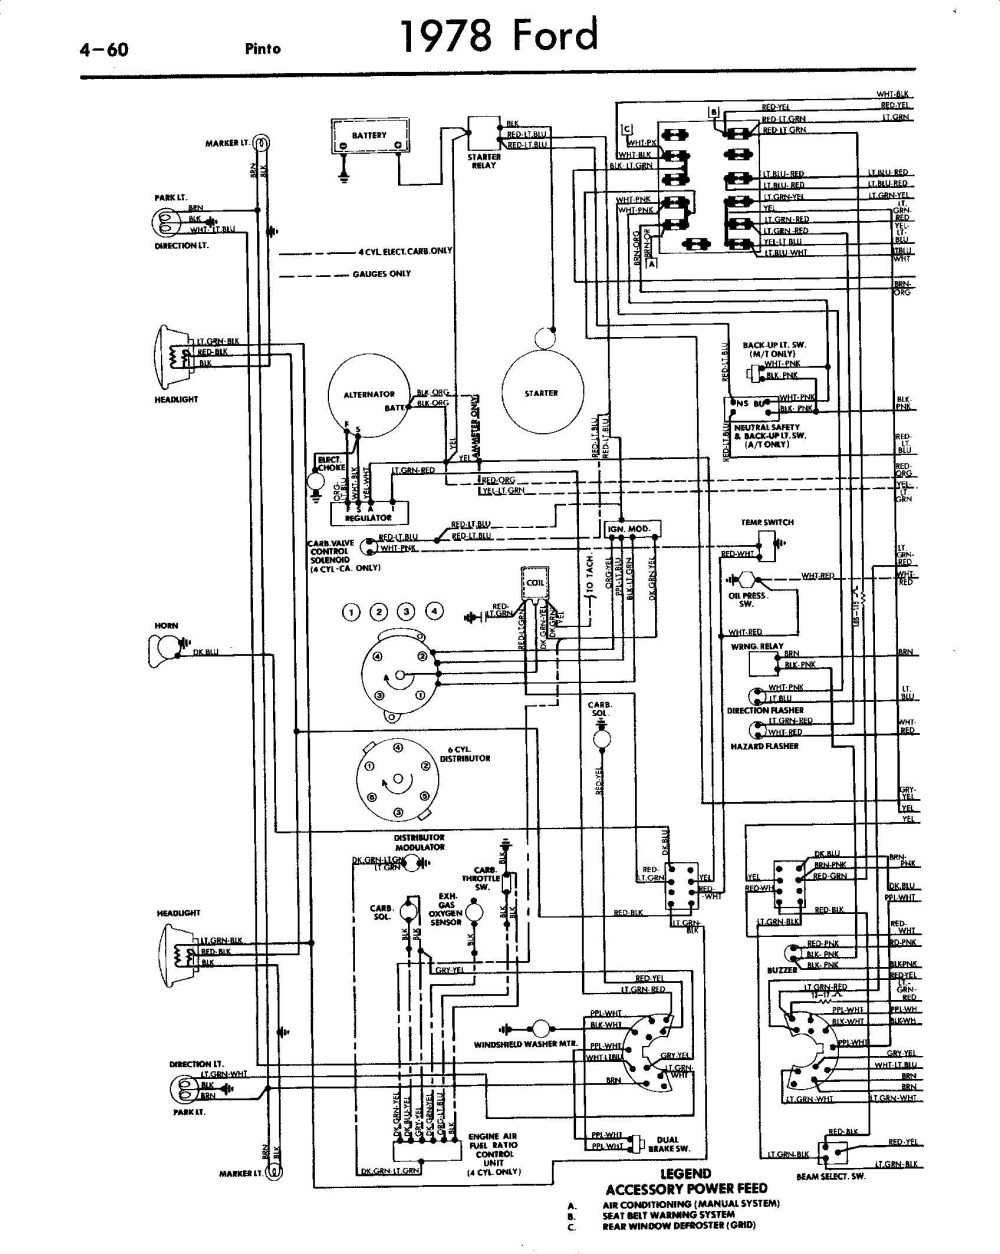 medium resolution of ford pinto wiring diagram wiring diagram rh komagoma co 1995 ford 7 3 diesel fuel system diagram